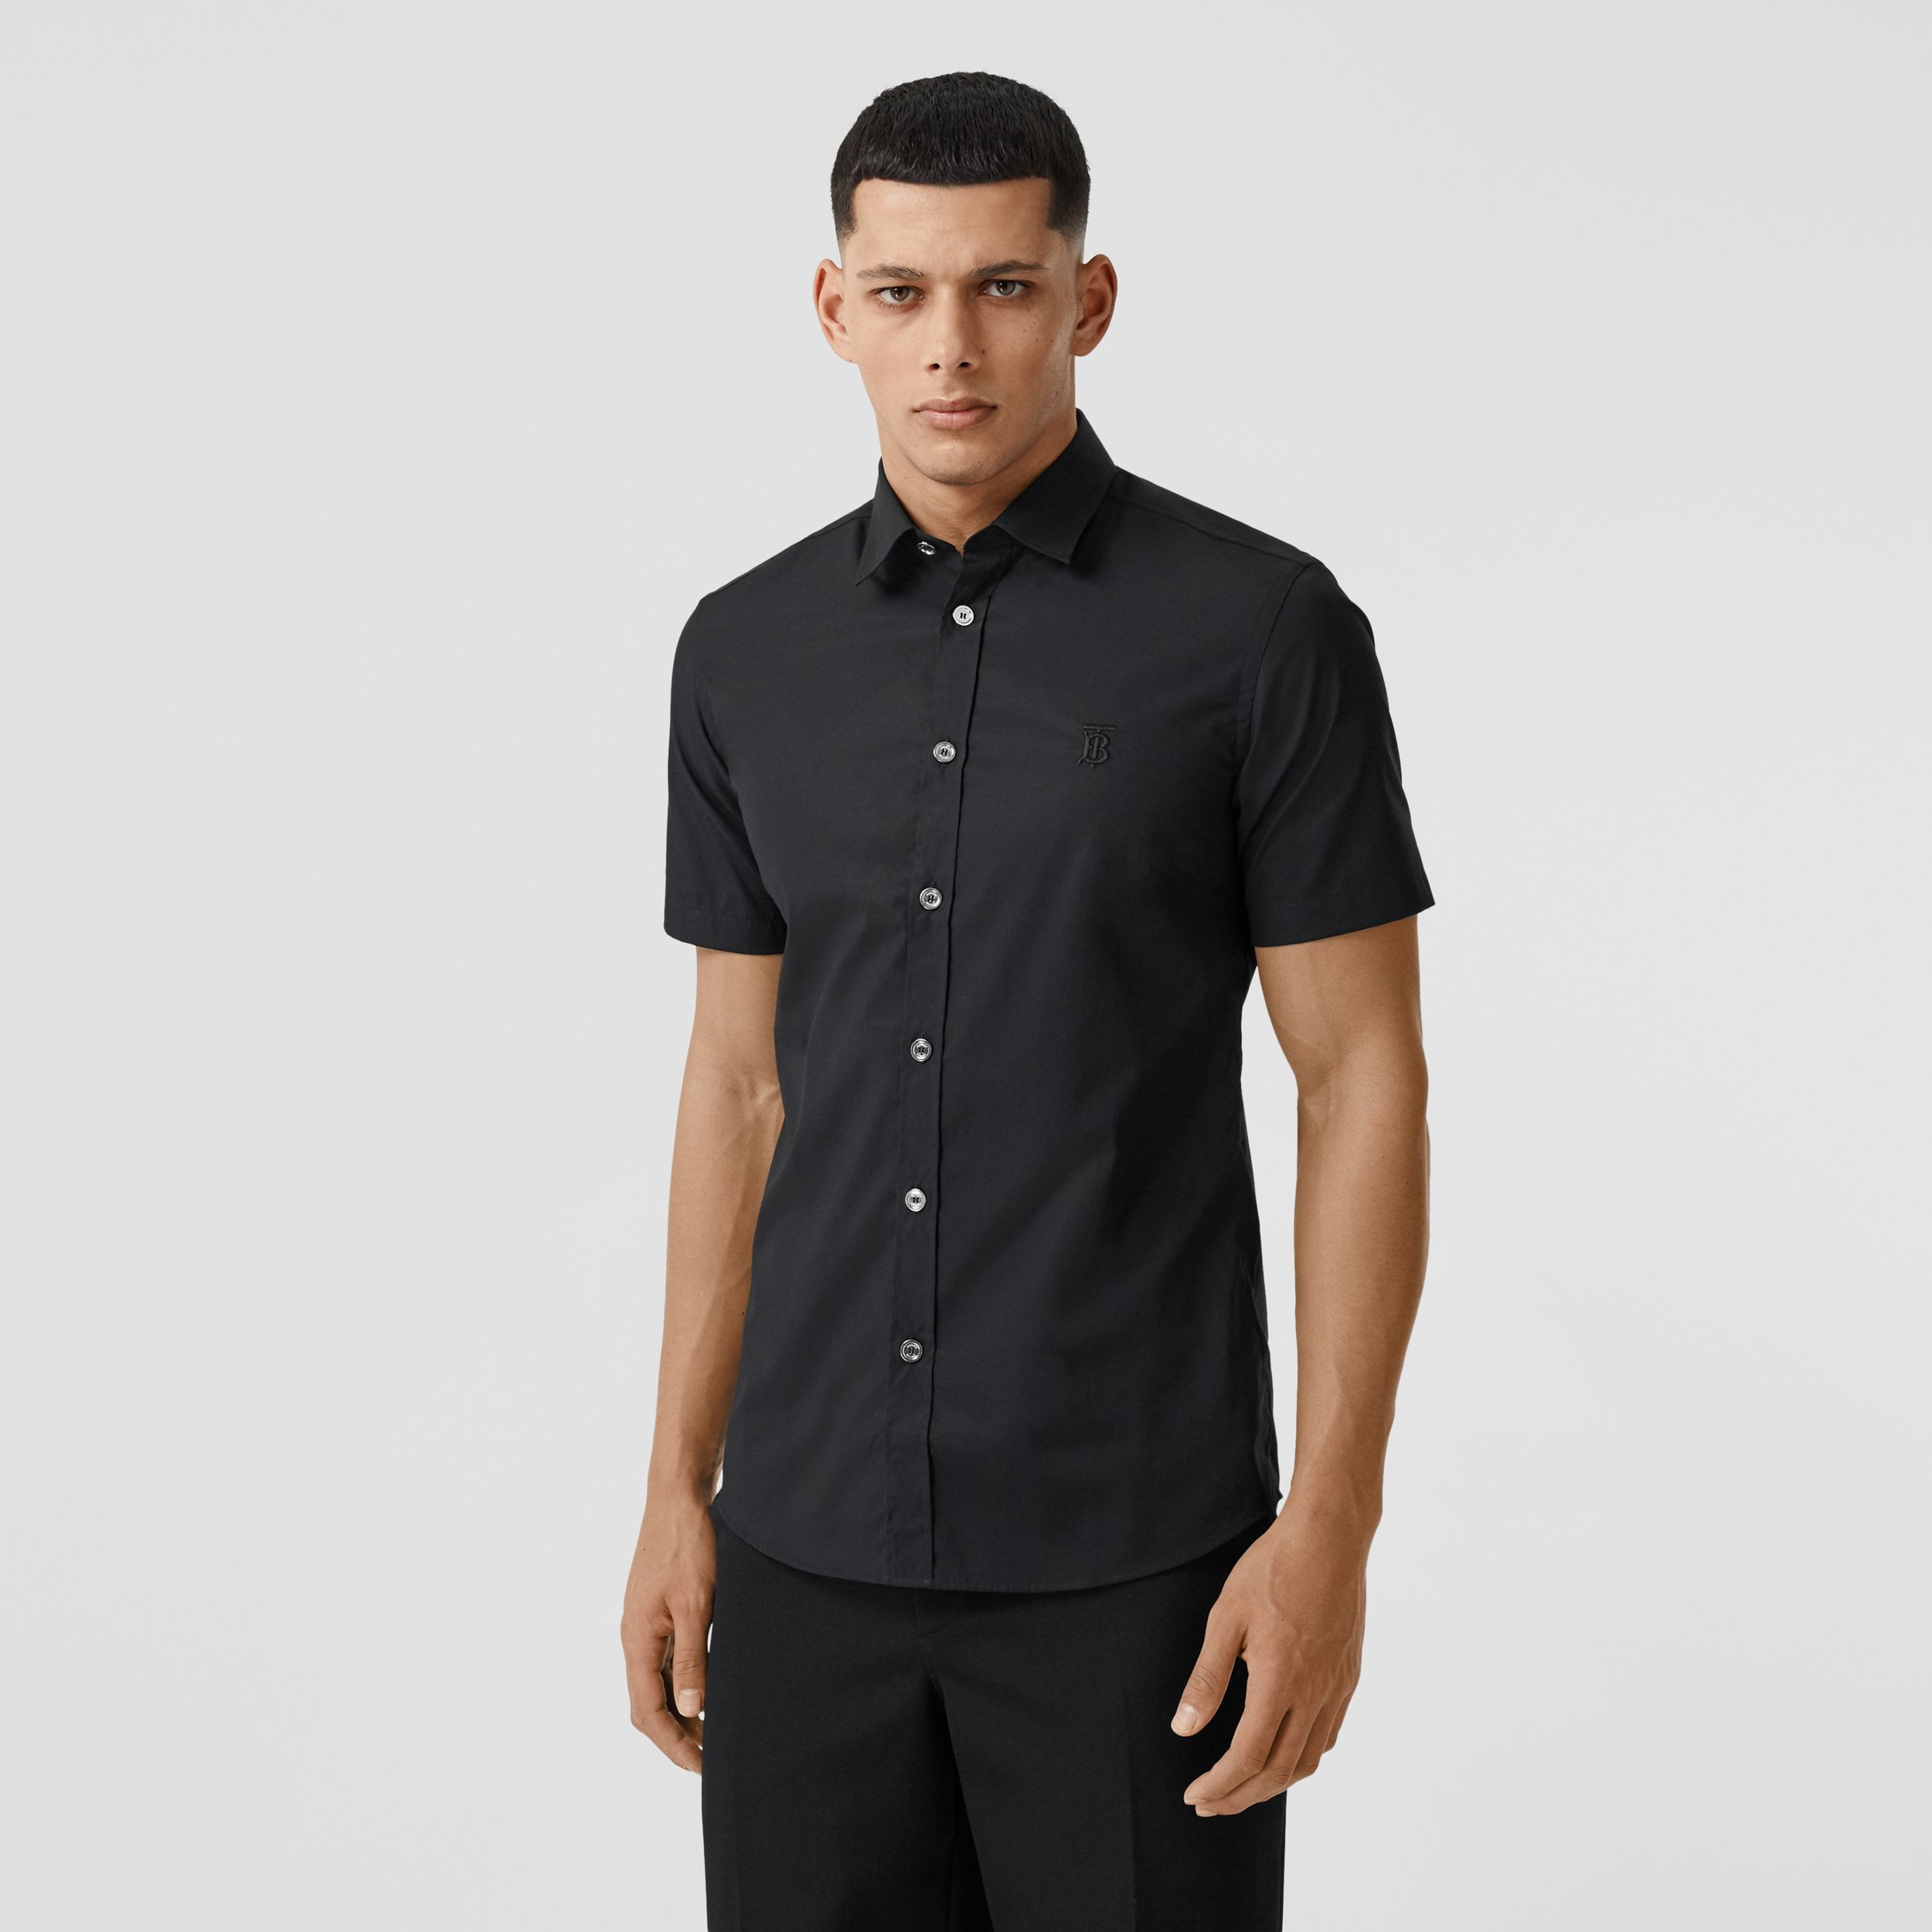 Short-sleeve Monogram Motif Stretch Cotton Shirt in Black - Men | Burberry Hong Kong S.A.R. - 1